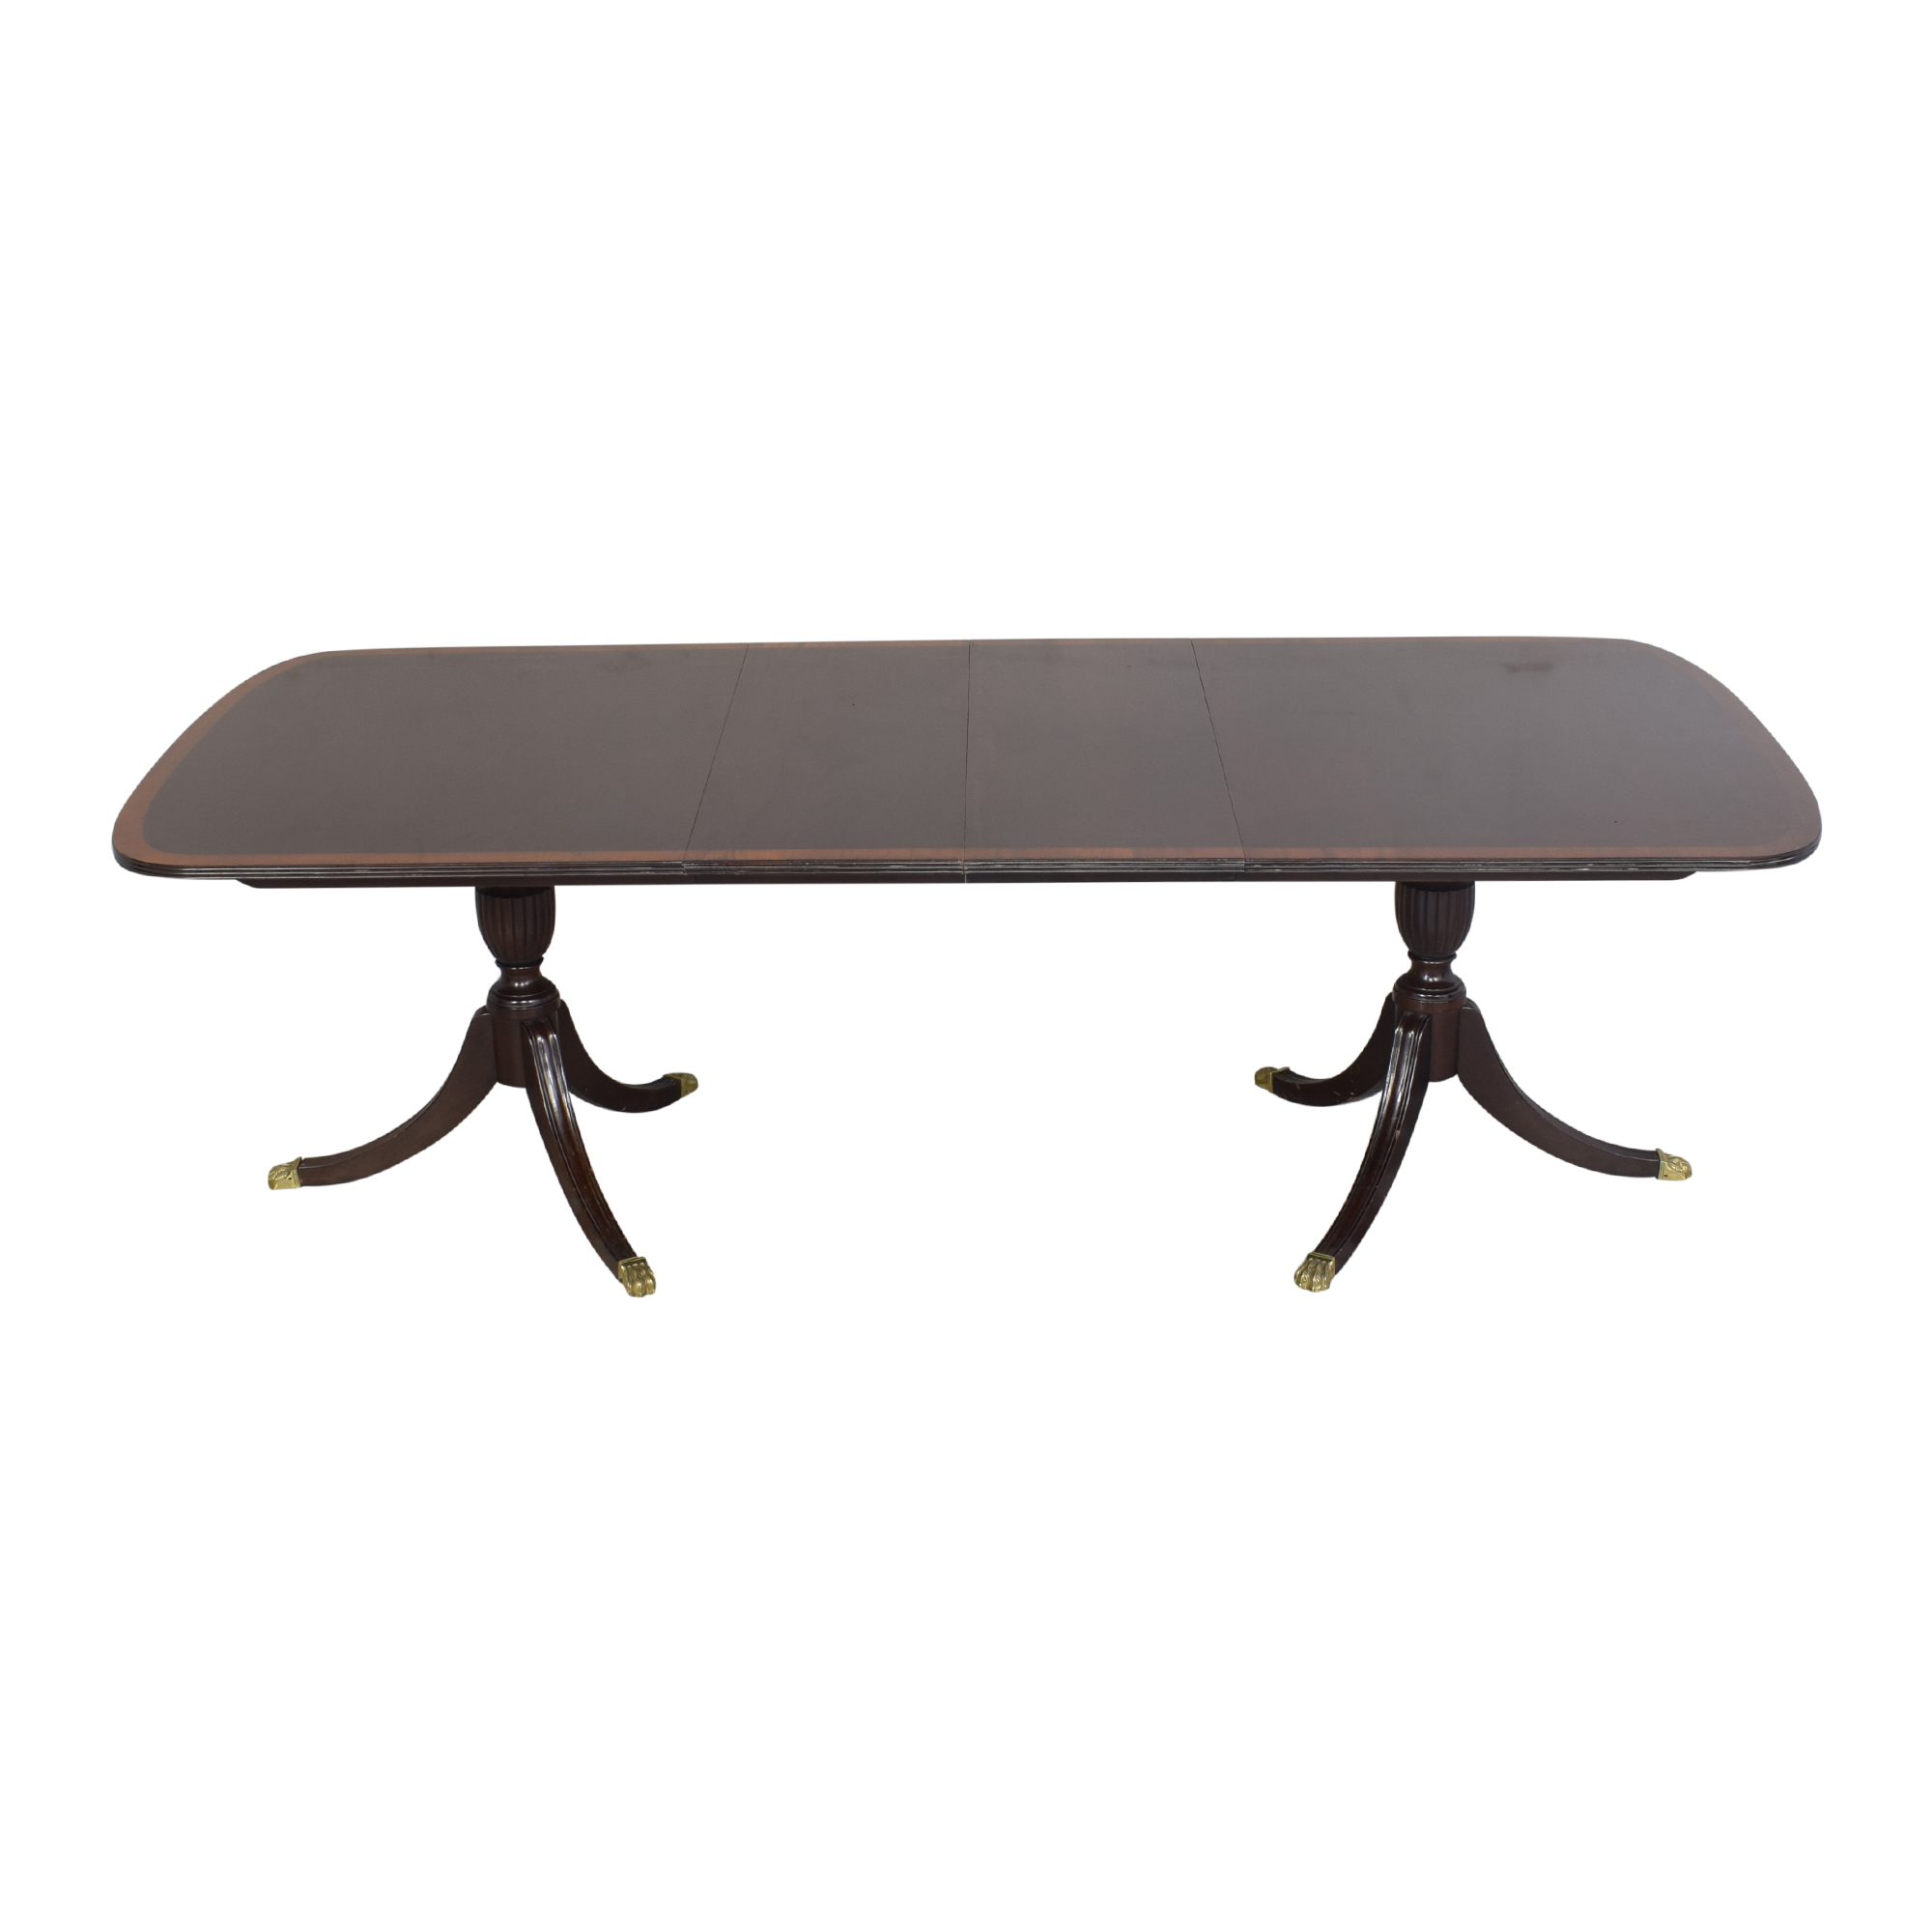 Stickley Furniture Stickley Furniture Extendable Double Pedestal Dining Table Brown